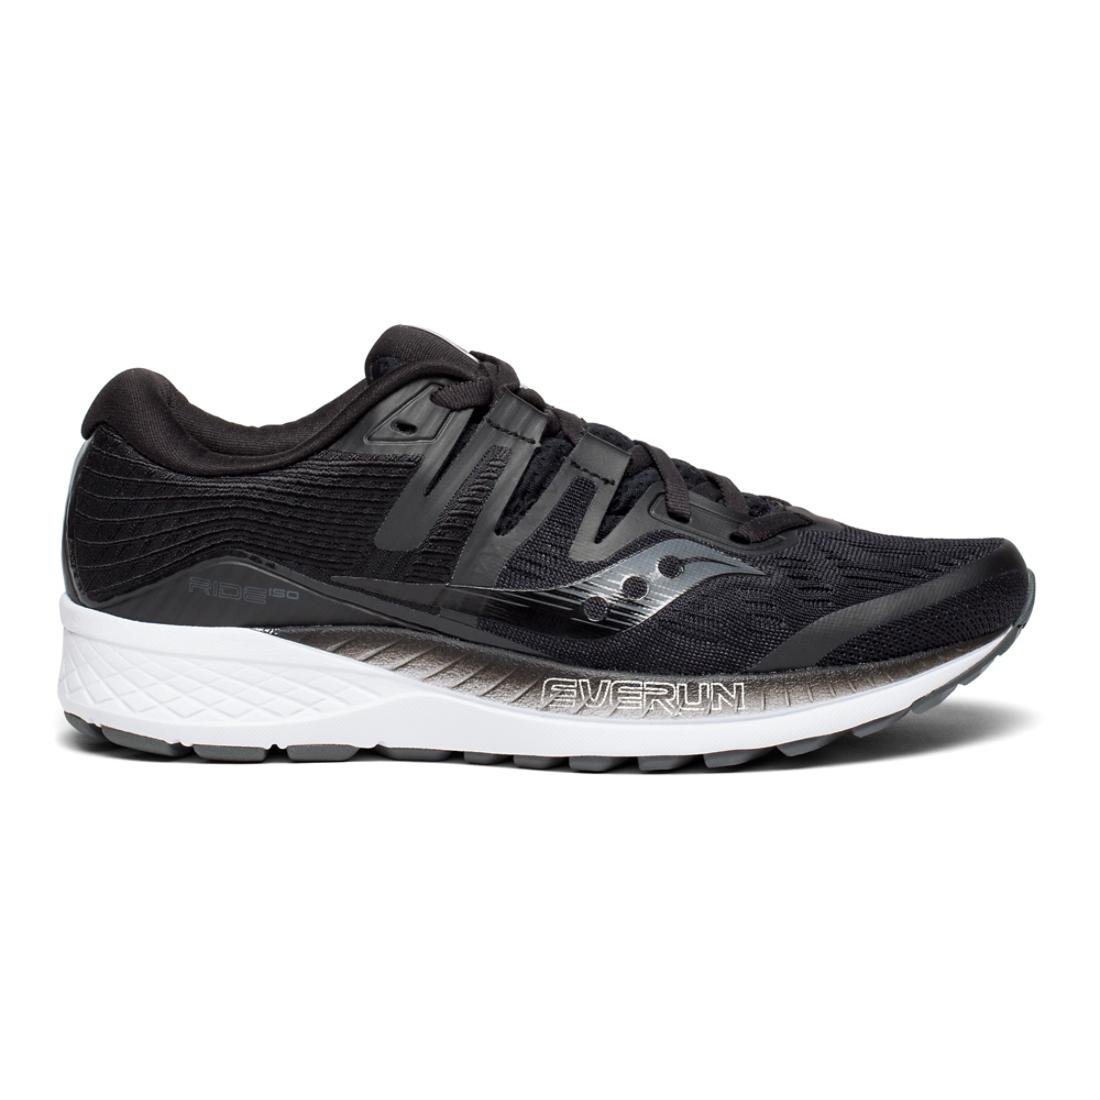 Saucony Women's Ride ISO D Running Shoe B078PPWNKH 11.5 D ISO US|Black 49d3f9